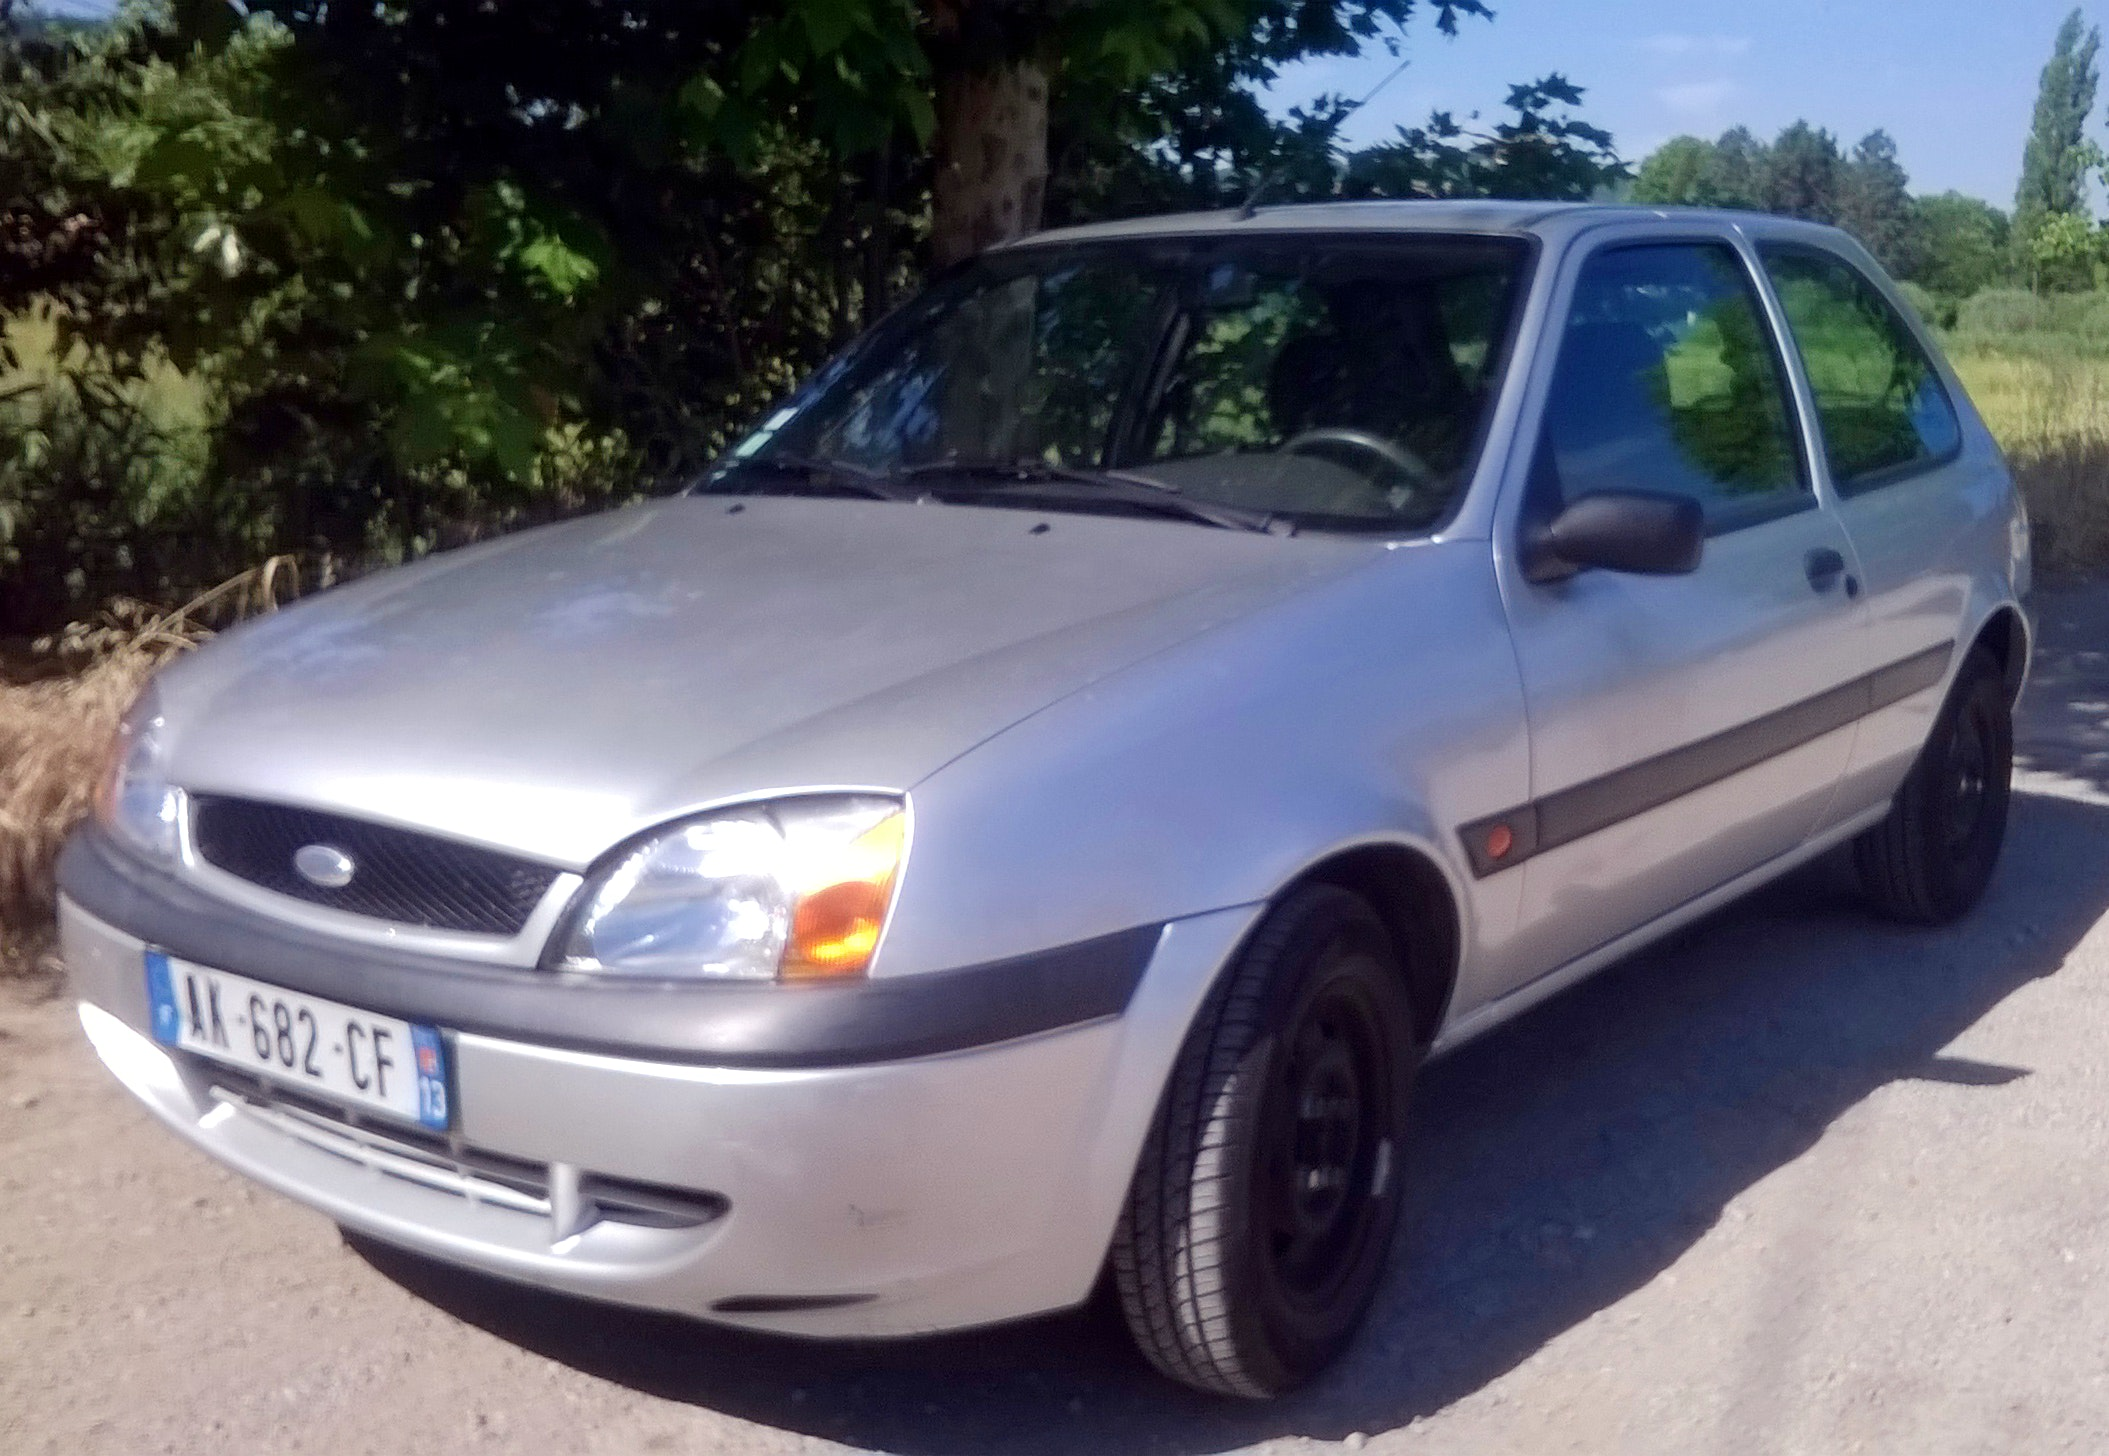 Ford Fiesta, 2001, Essence - Berline Marseille (13)